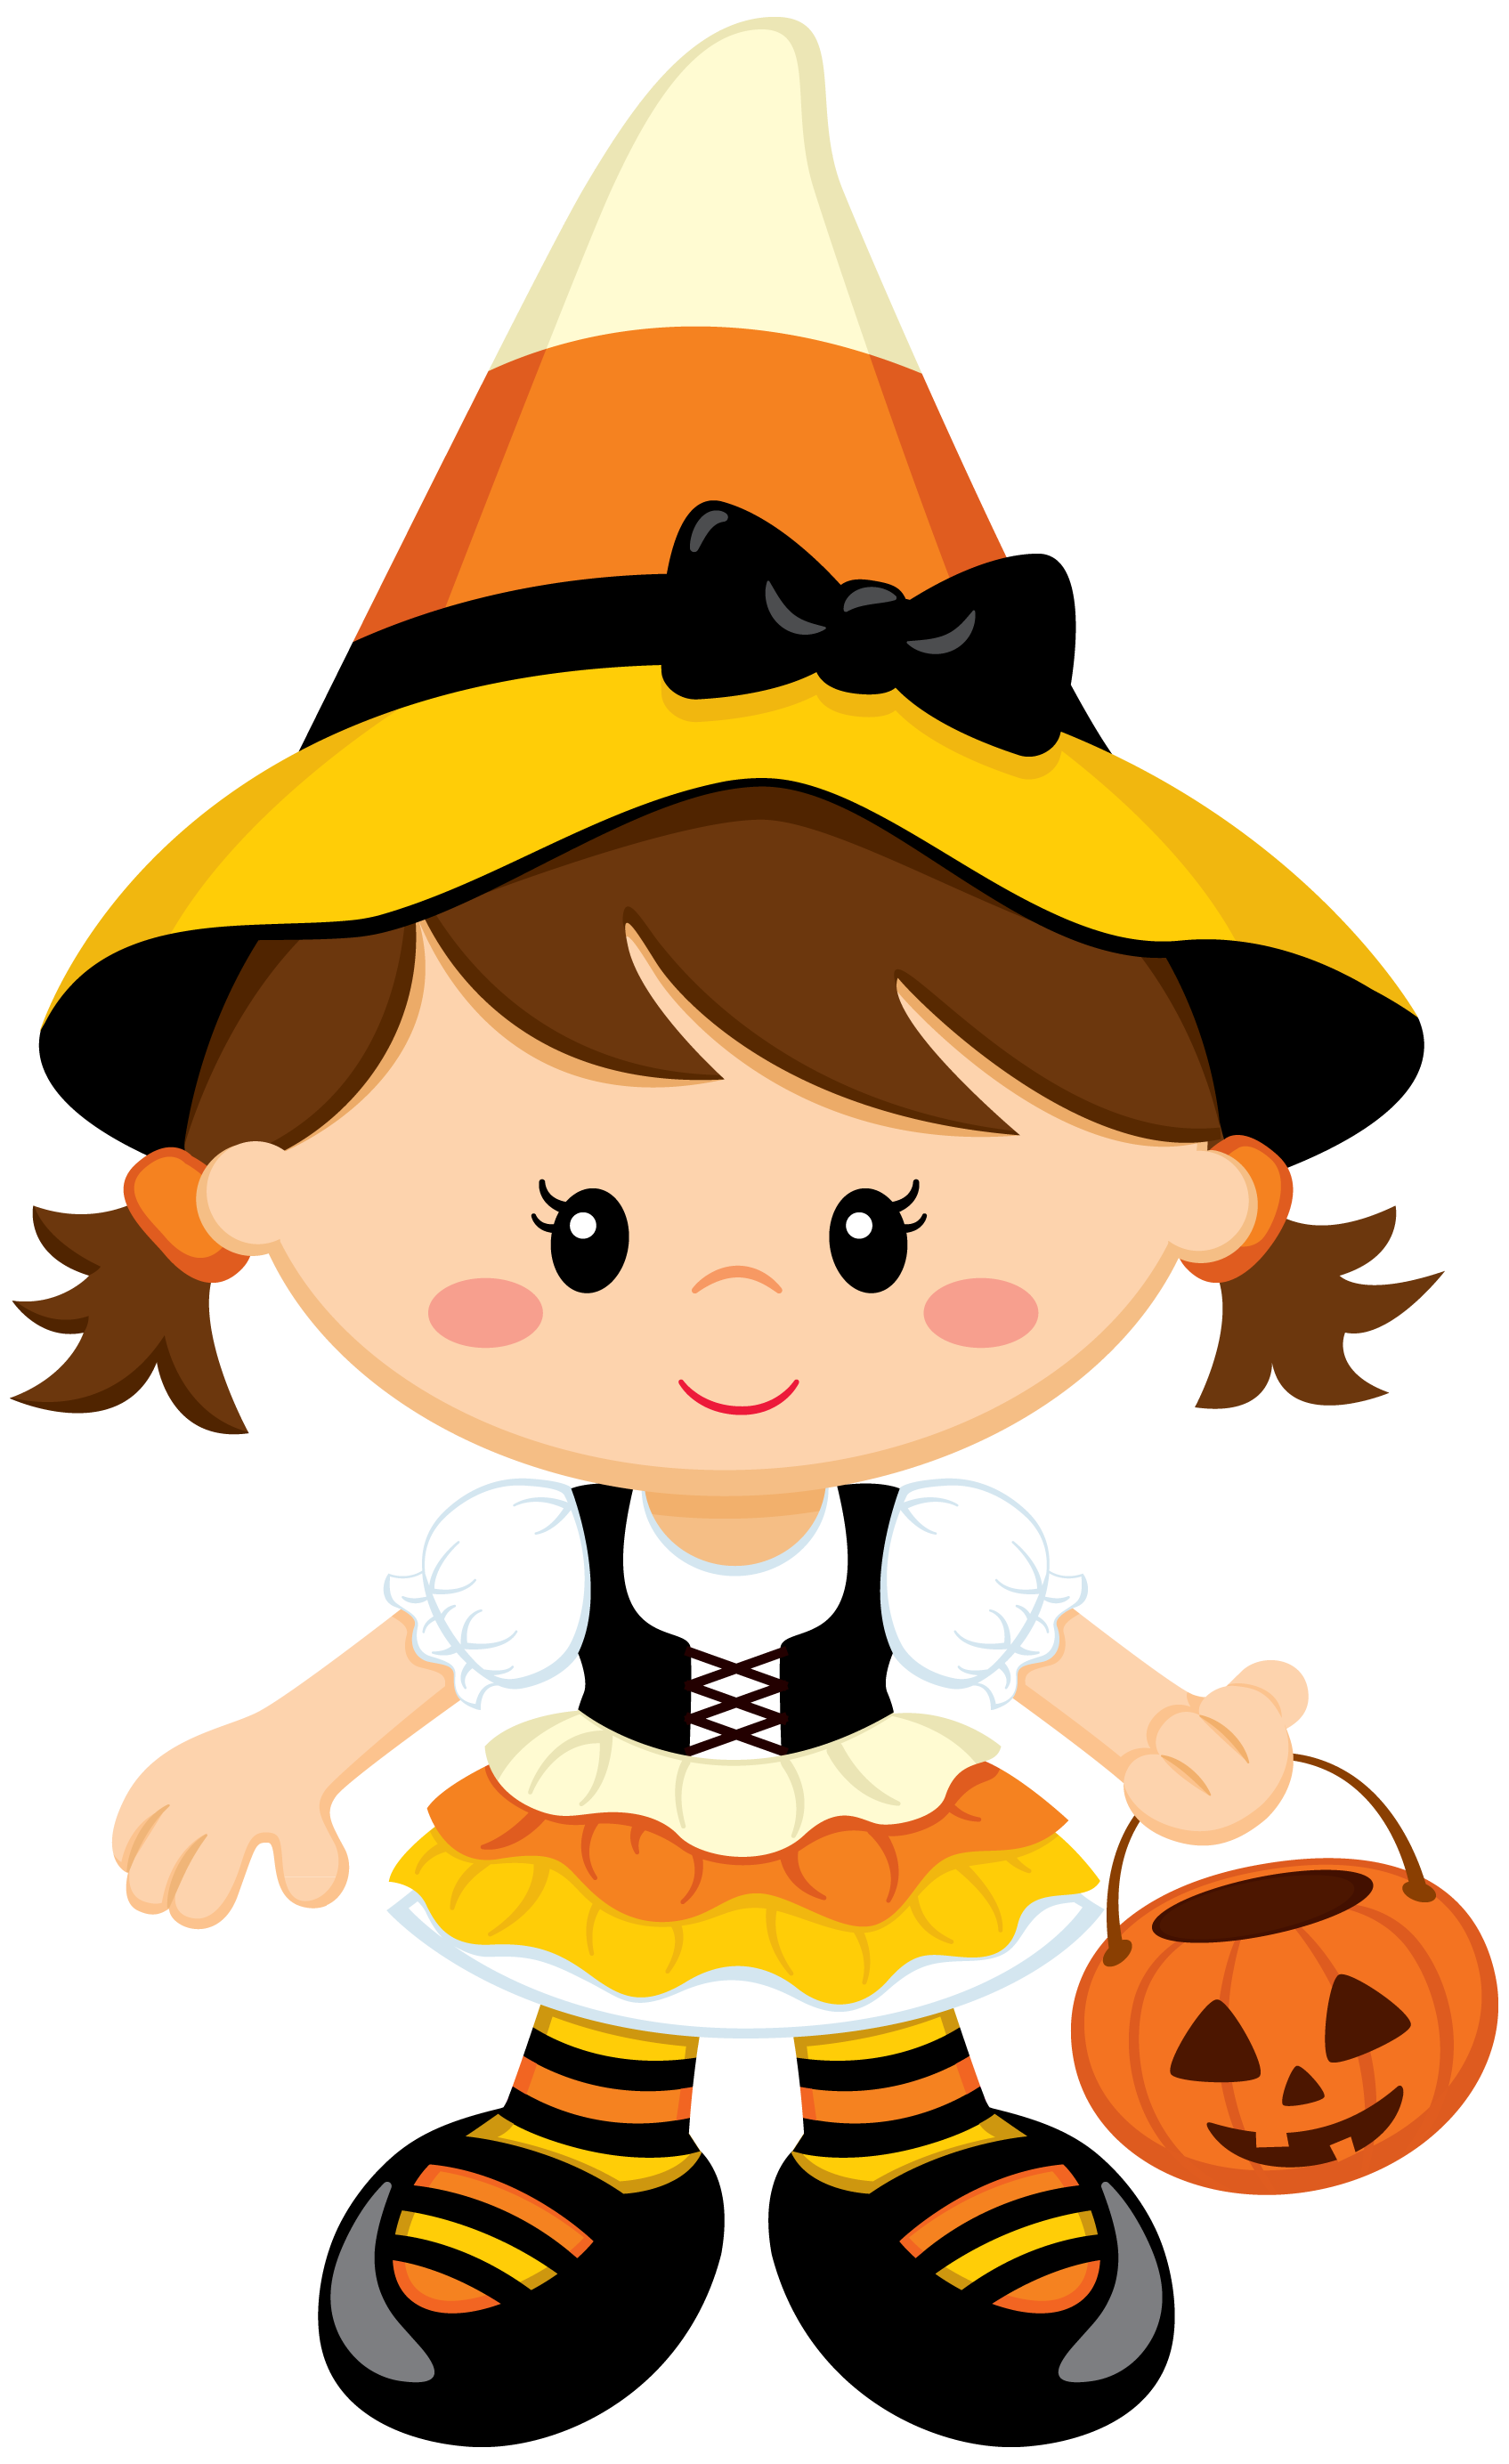 Baby in turkey outfit clipart svg black and white library Brujita | Halloween Fun | Pinterest | Halloween fun and Svg file svg black and white library